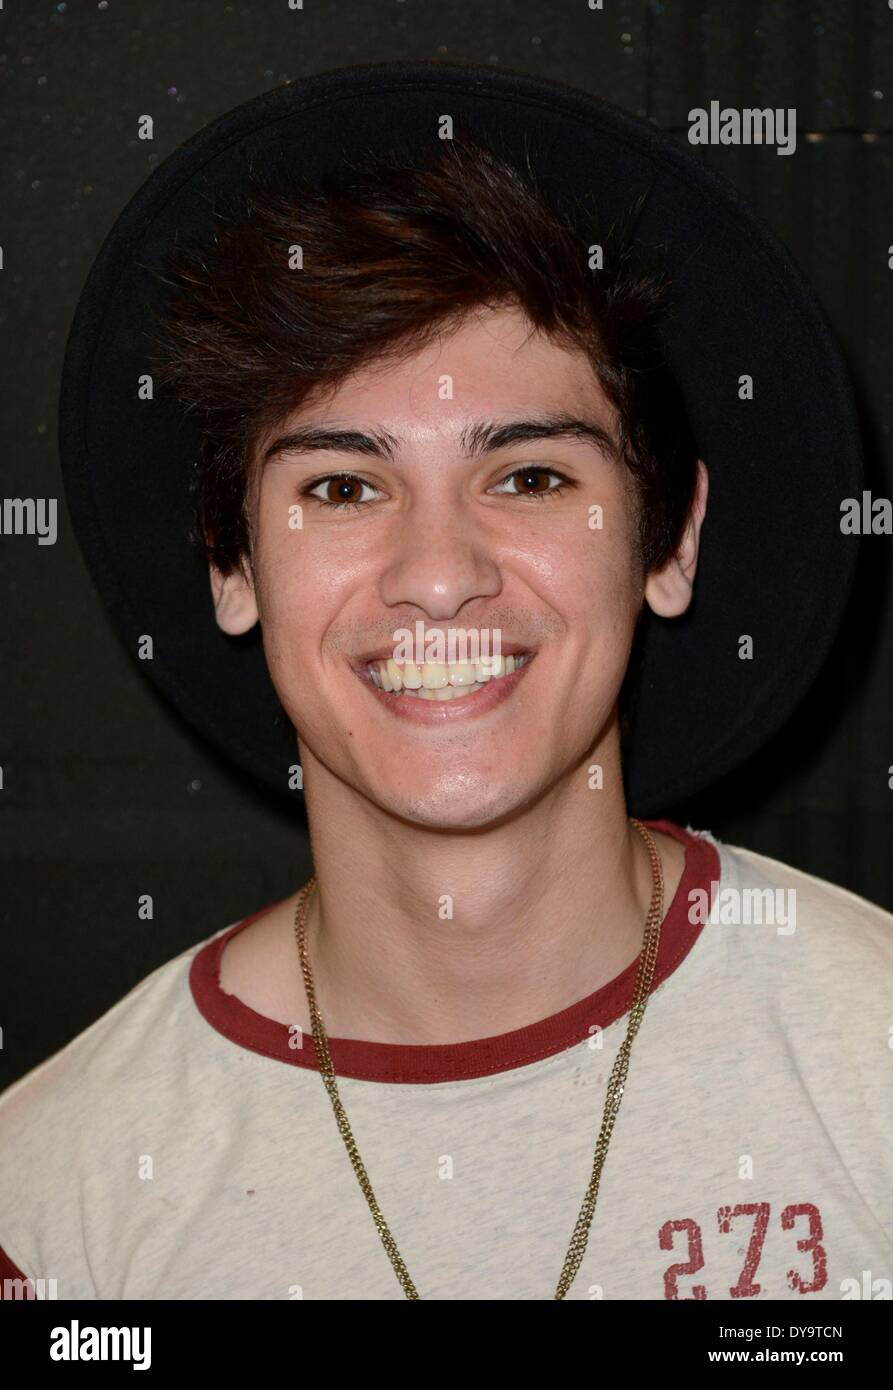 New York, NY, USA. 10th Apr, 2014. Anthony Ladao inside for Press Day with MIDNIGHT RED, New York, NY April 10, 2014. Credit:  Derek Storm/Everett Collection/Alamy Live News - Stock Image